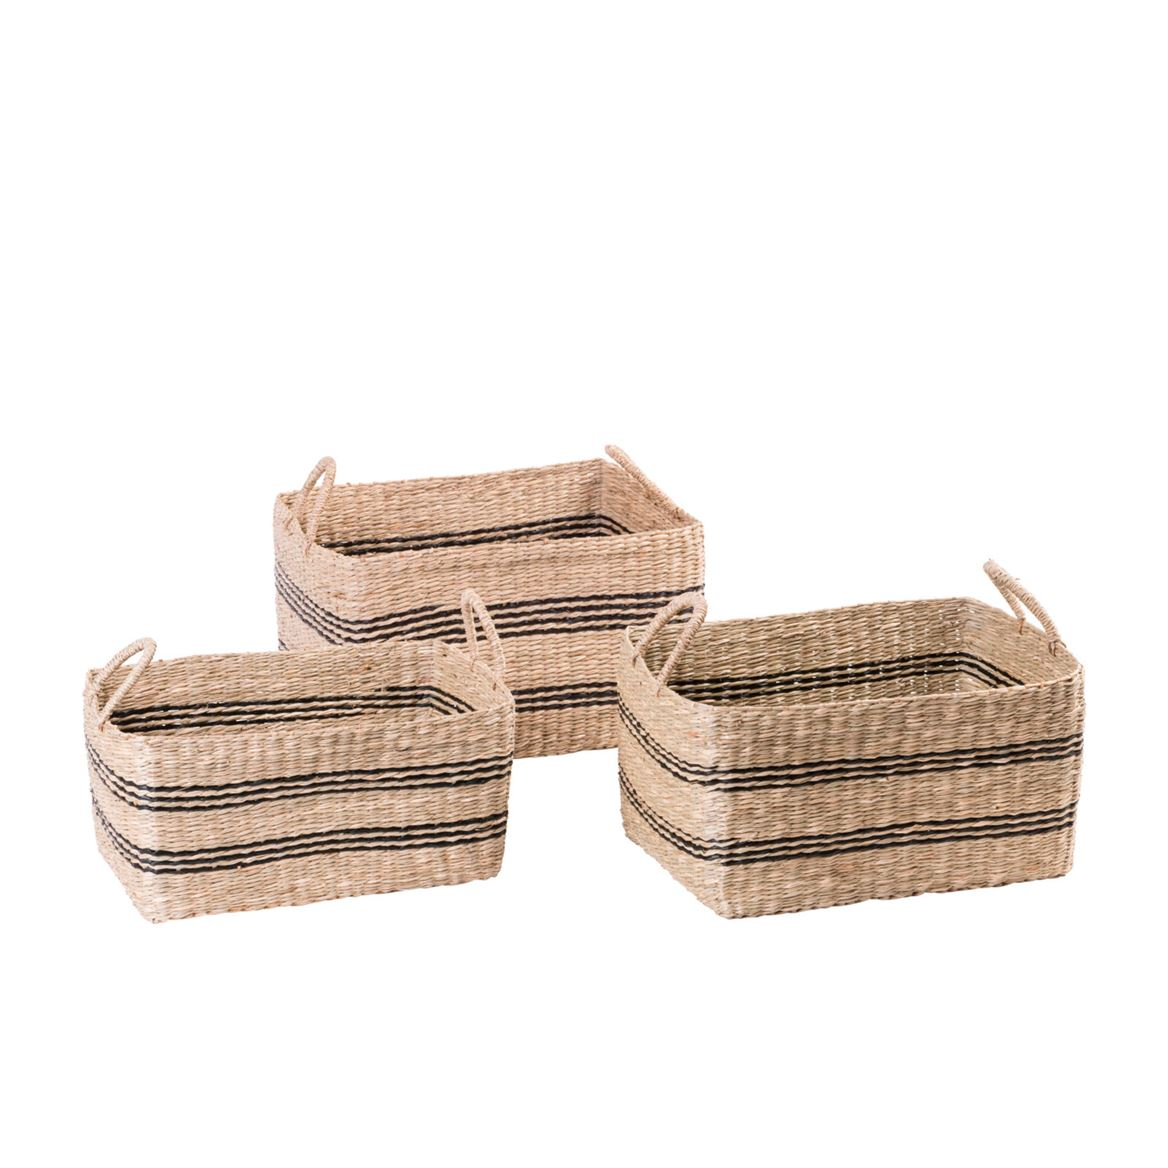 BILLY RAY Cesto nero, naturale H 26 x W 34 x D 24 cm_billy-ray-cesto-nero,-naturale-h-26-x-w-34-x-d-24-cm